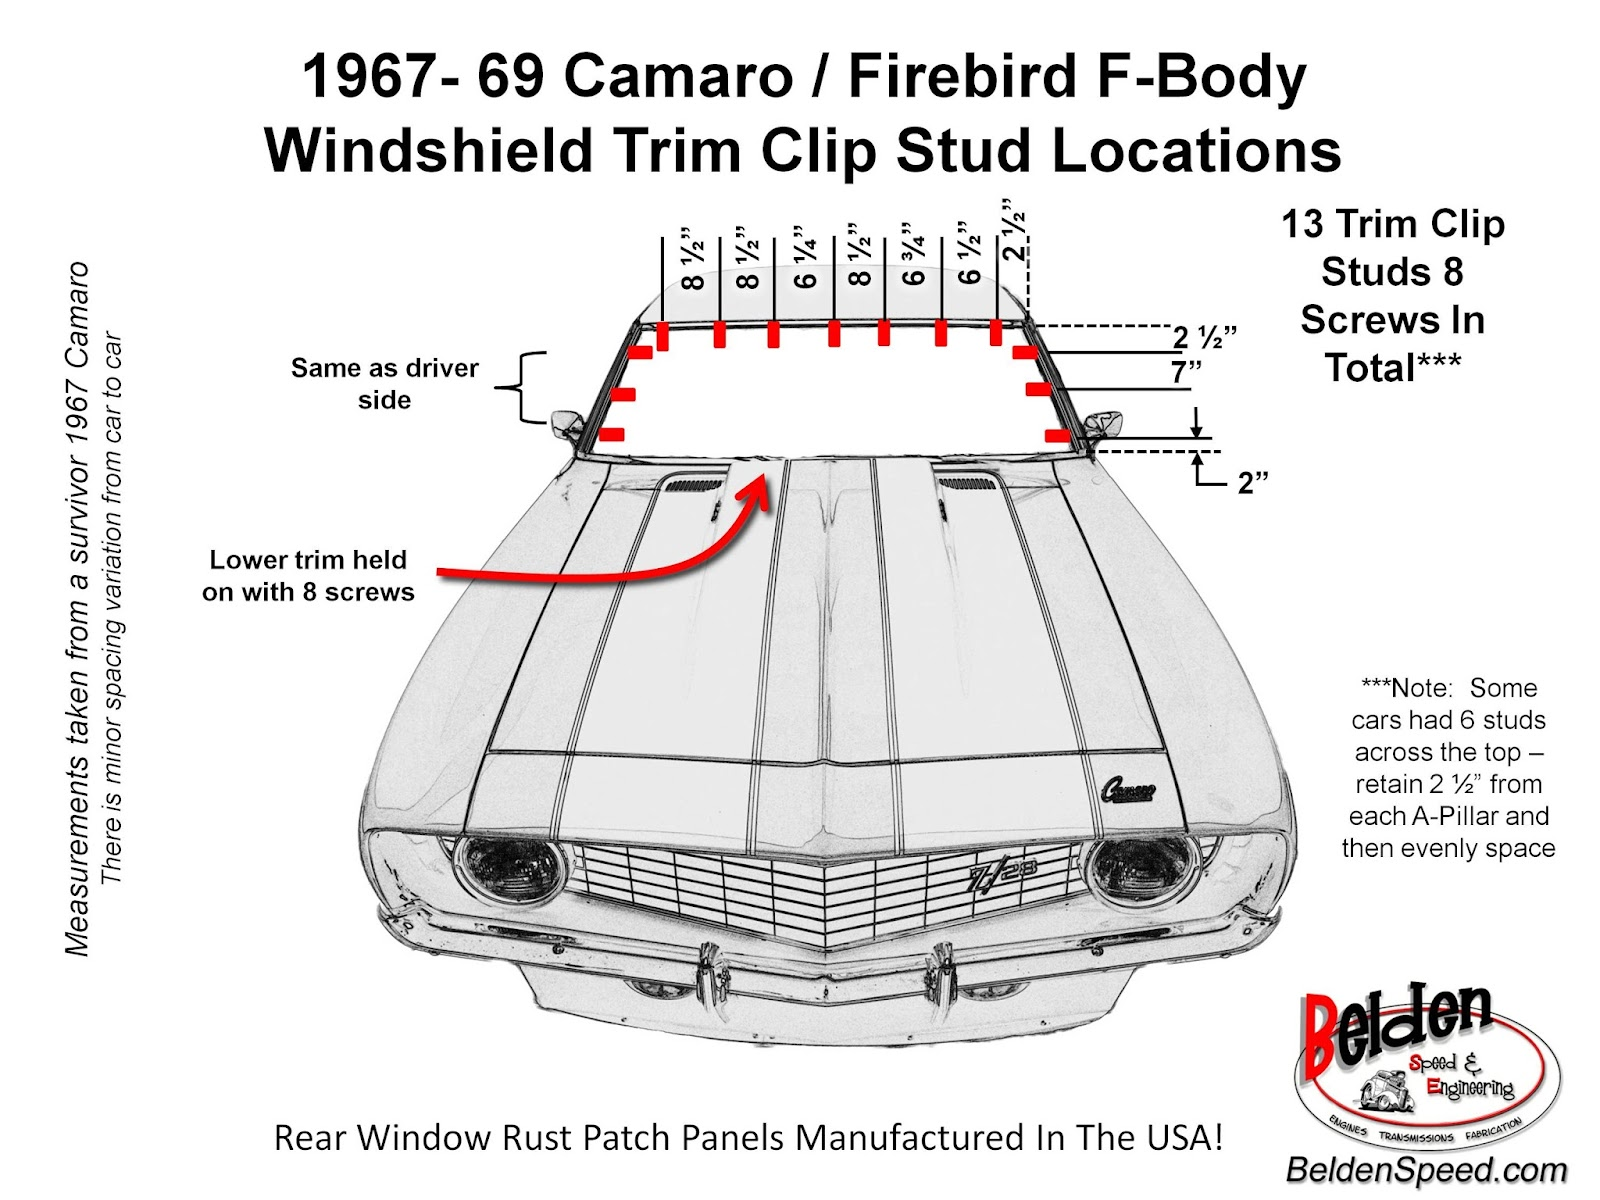 1967-1969 camaro/firebird f-body windshield trim clip stud locations